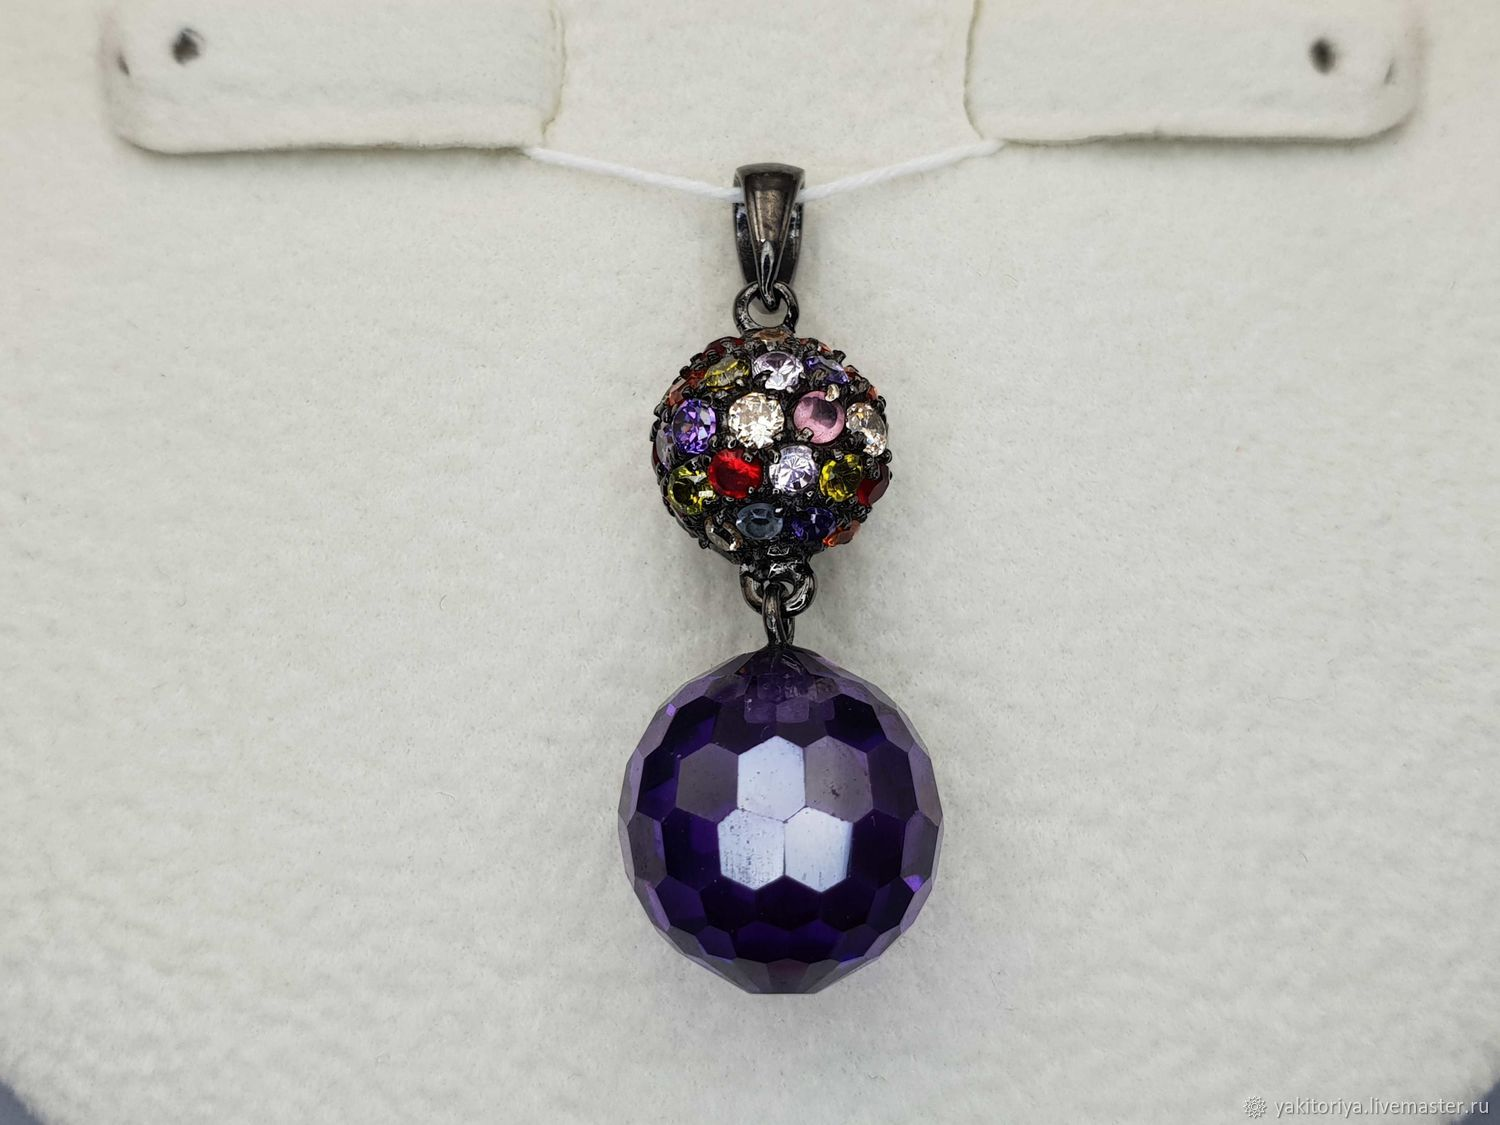 Pendant with topaz, amethyst, citrine, chrysolite and cubic zirconia, Pendants, Moscow,  Фото №1